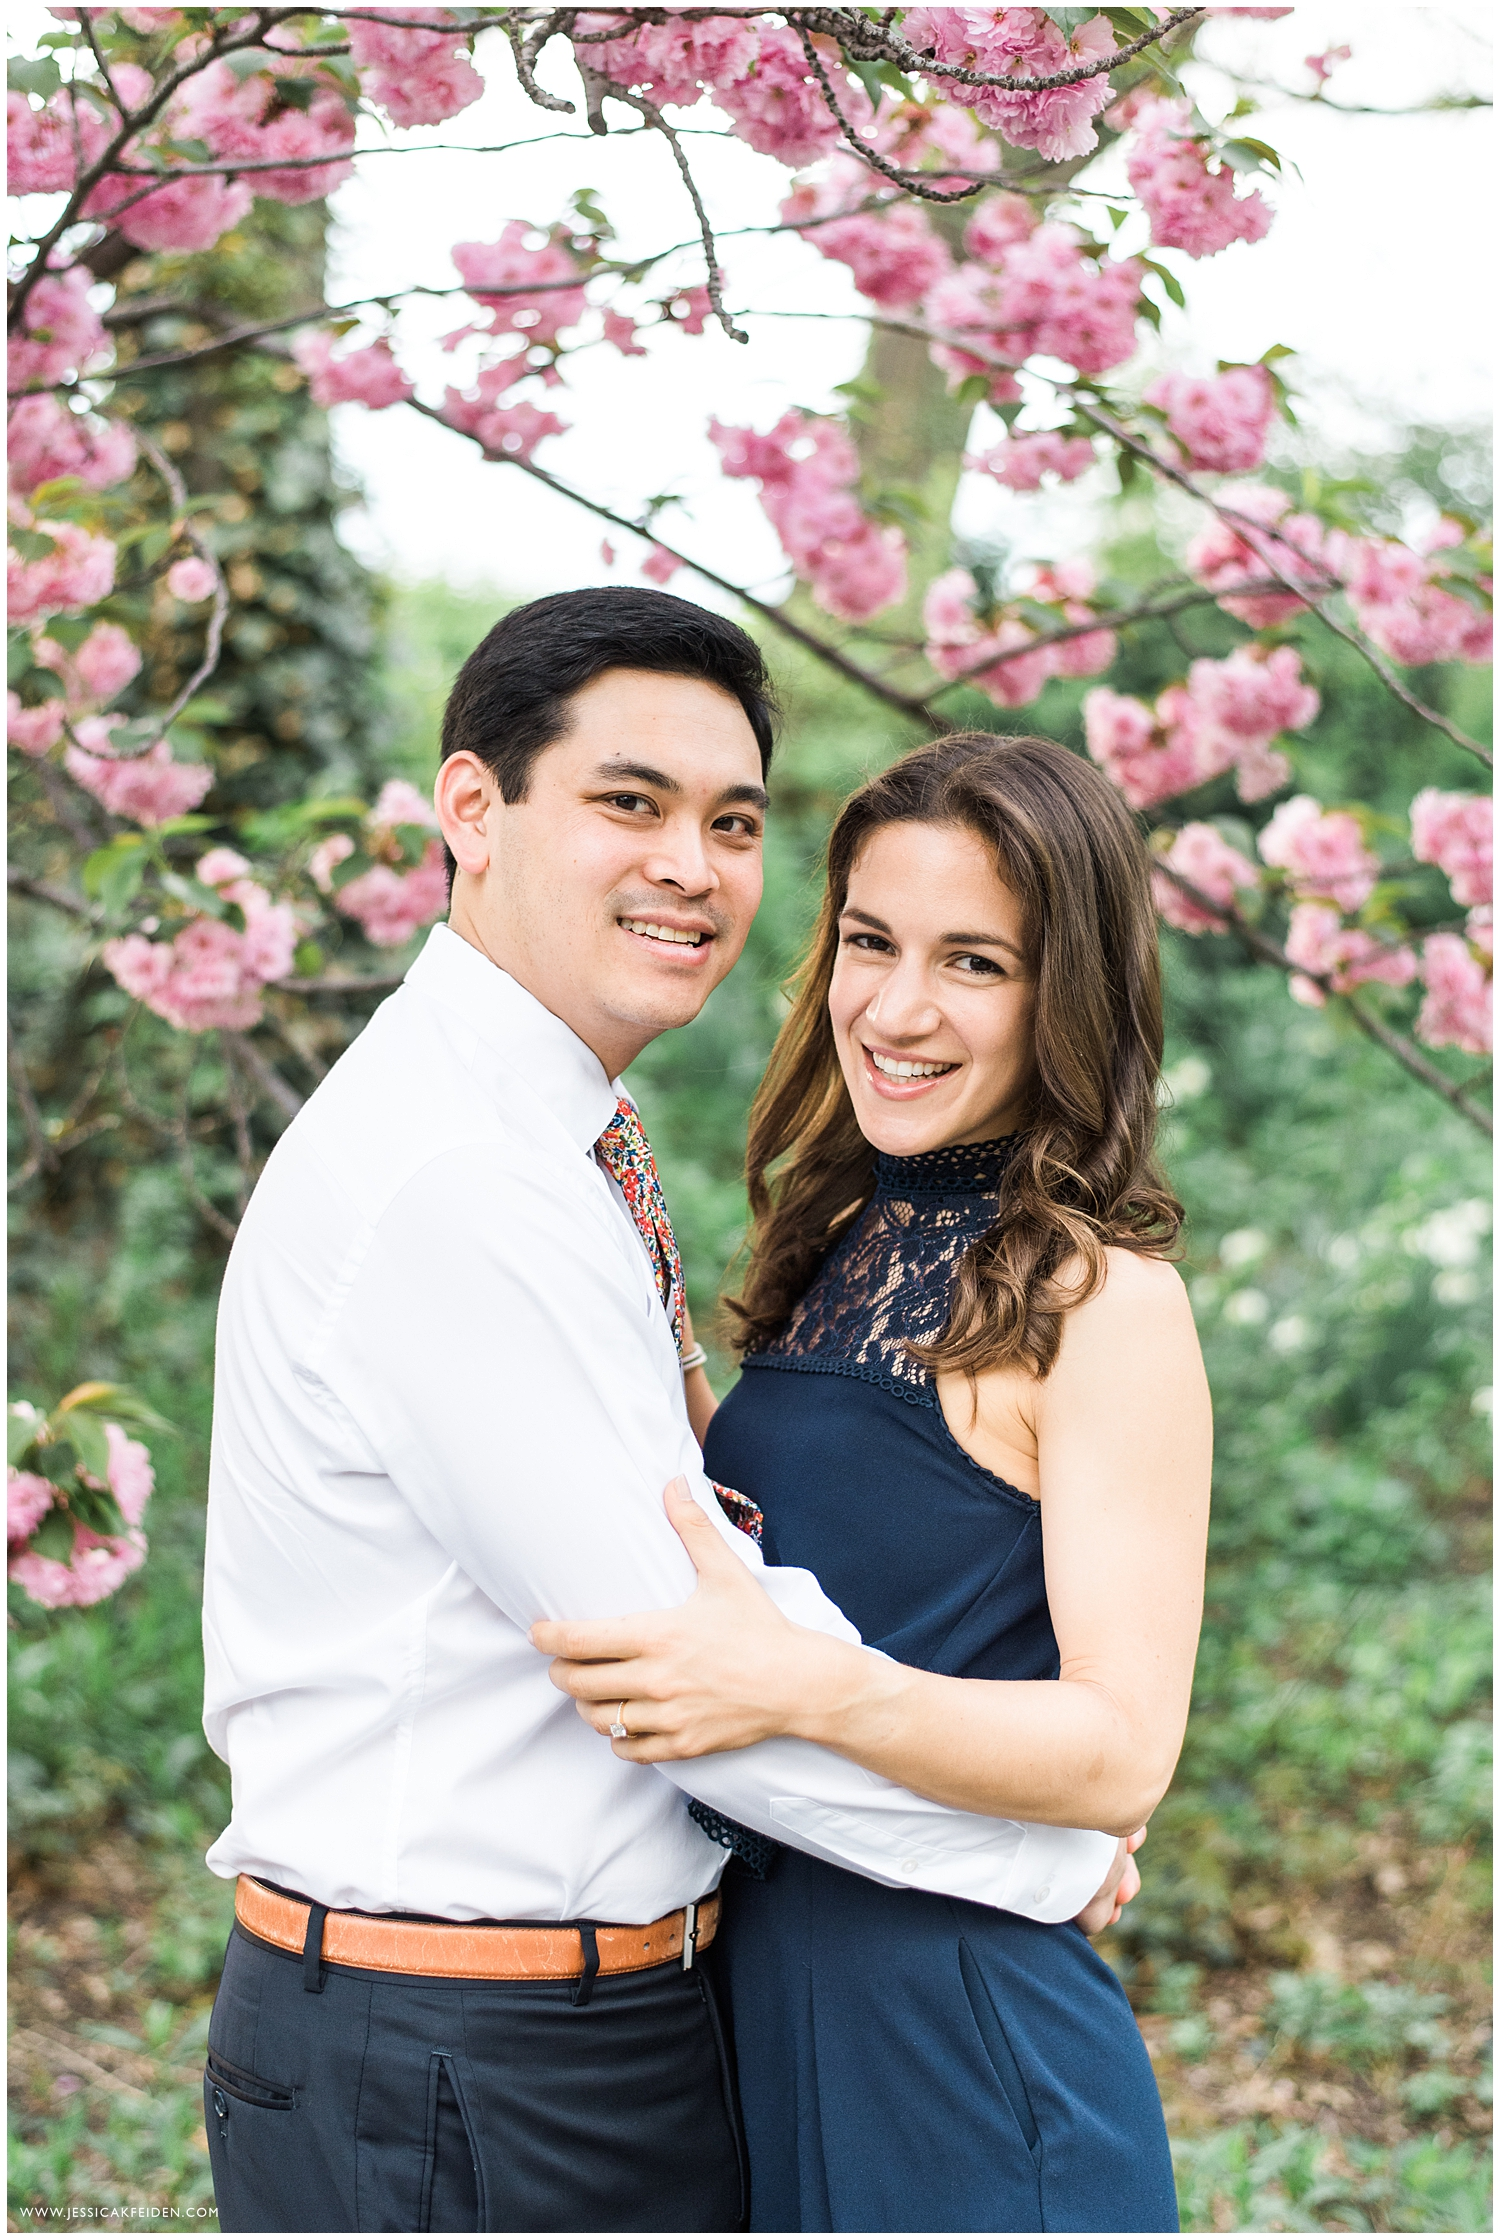 Jessica K Feiden Photography_Central Park NYC Engagement Session_0006.jpg